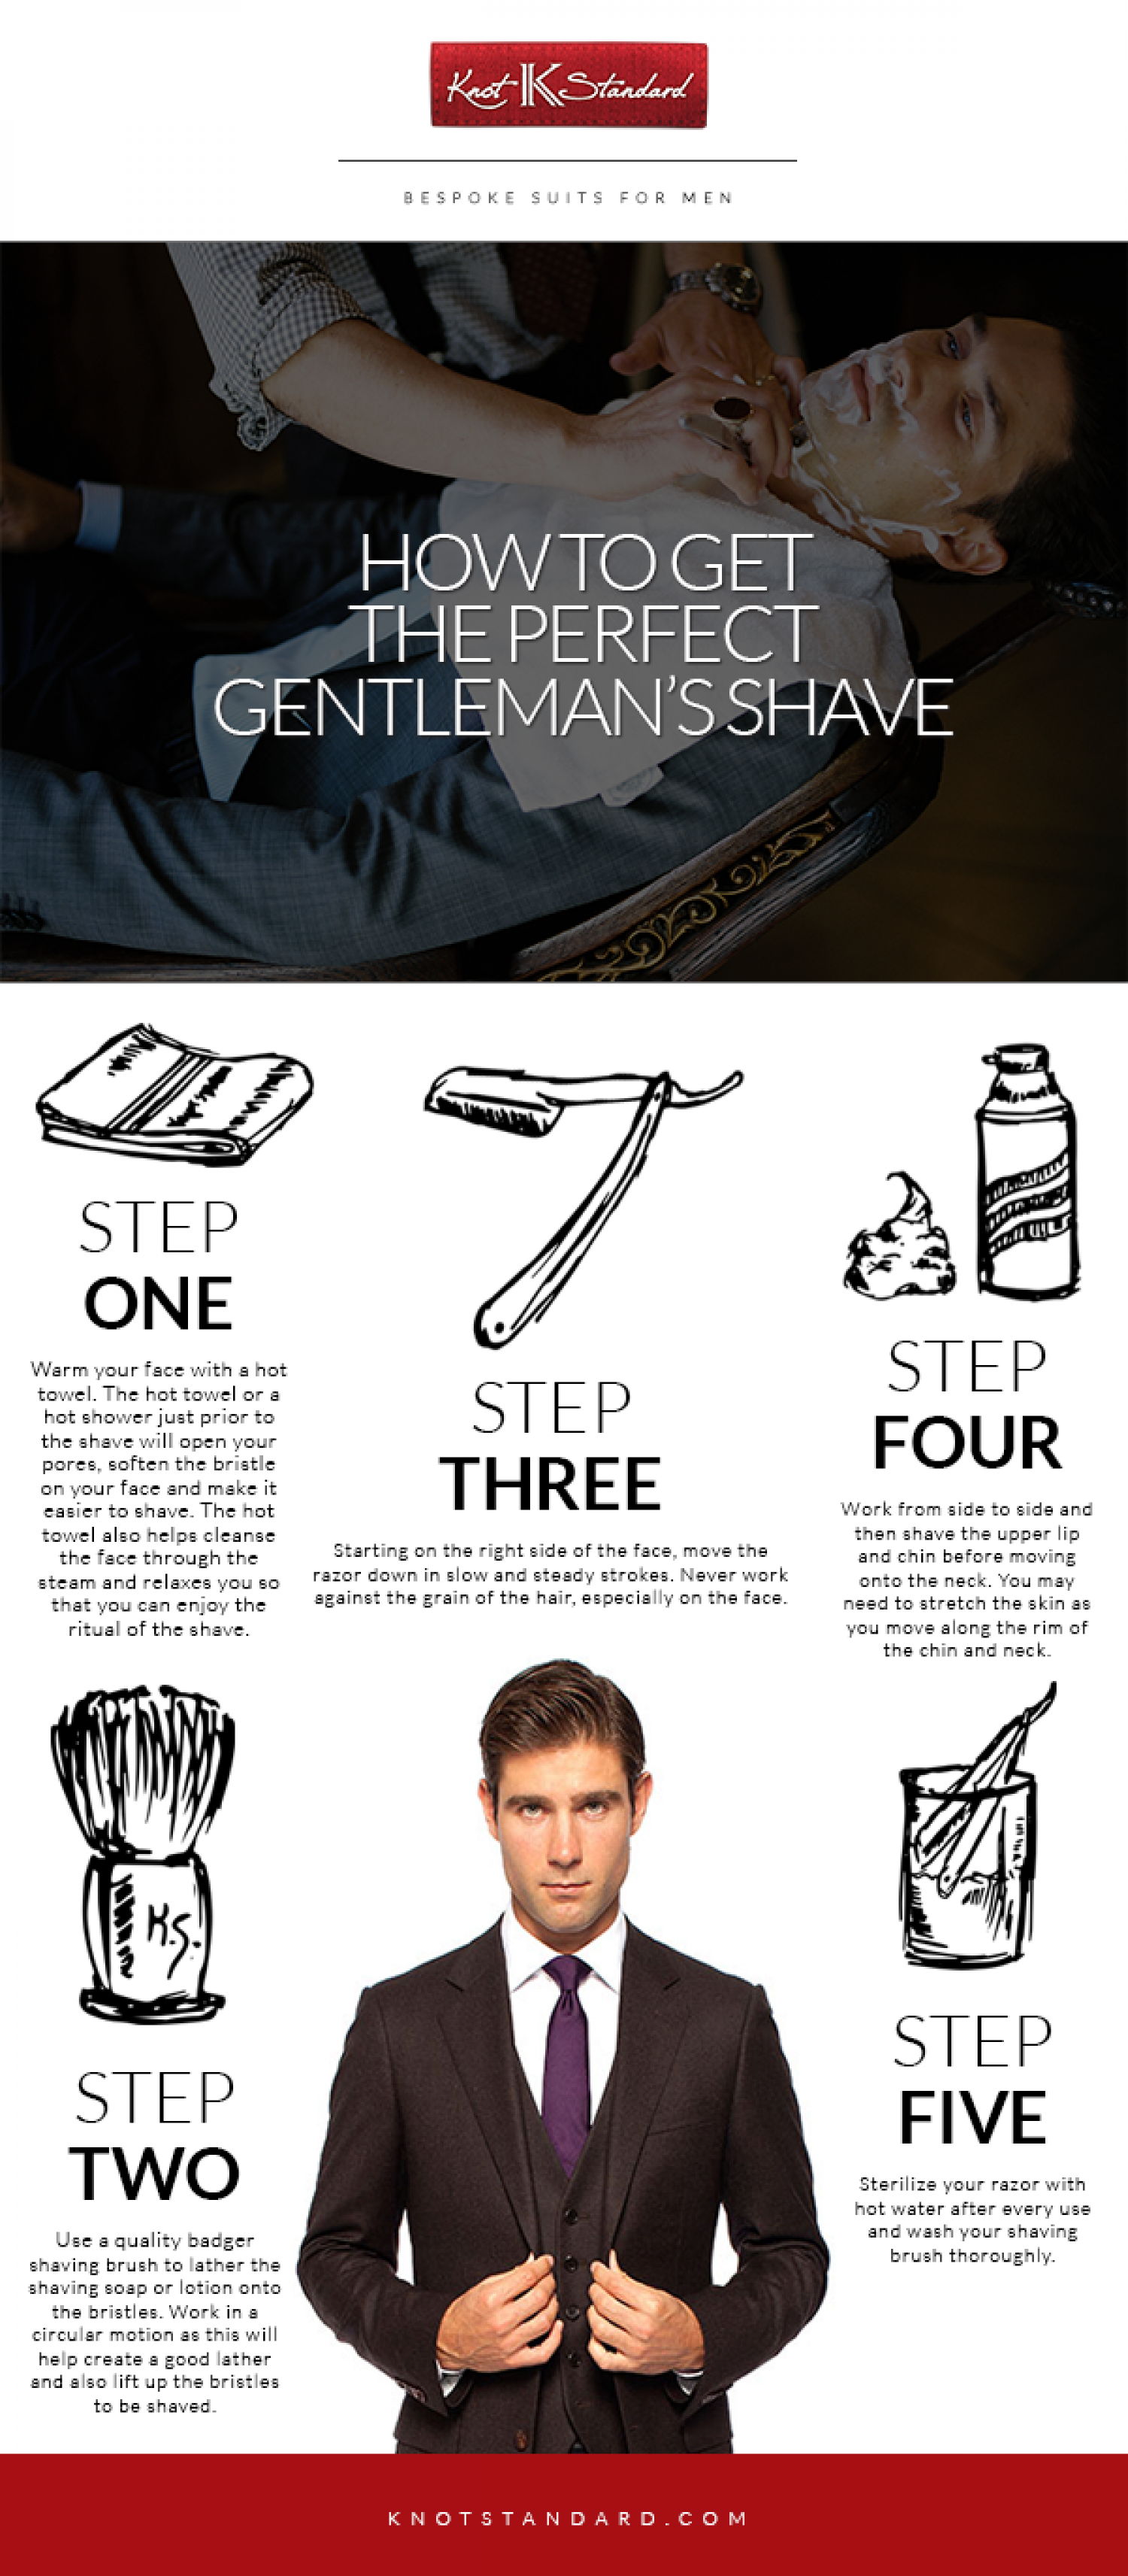 How to Get the Perfect Gentleman's Shave Infographic